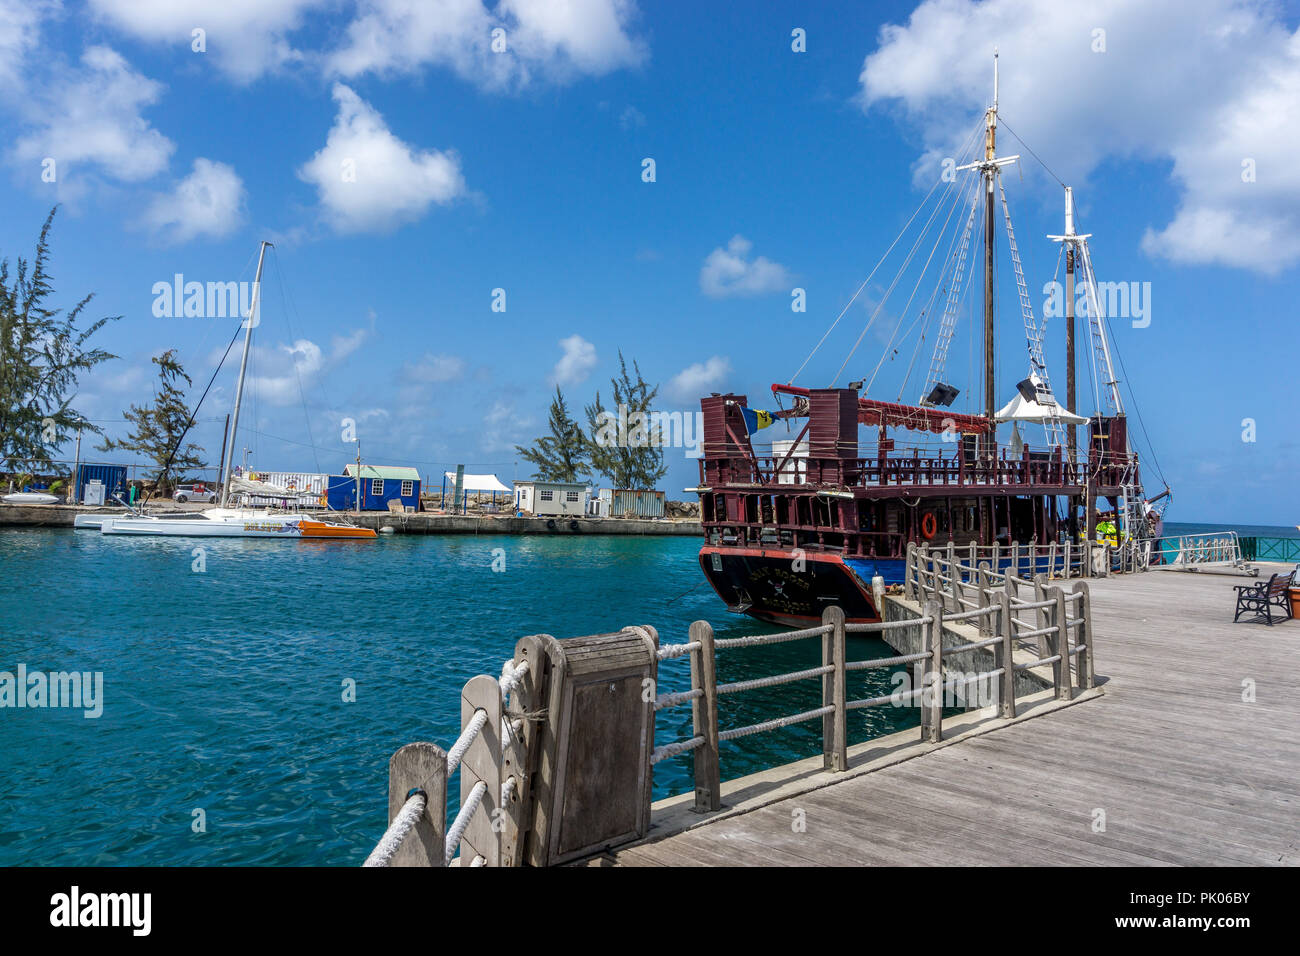 Jolly roger, Harbour and port, Old Town, Bridgtown, Barbados - Stock Image